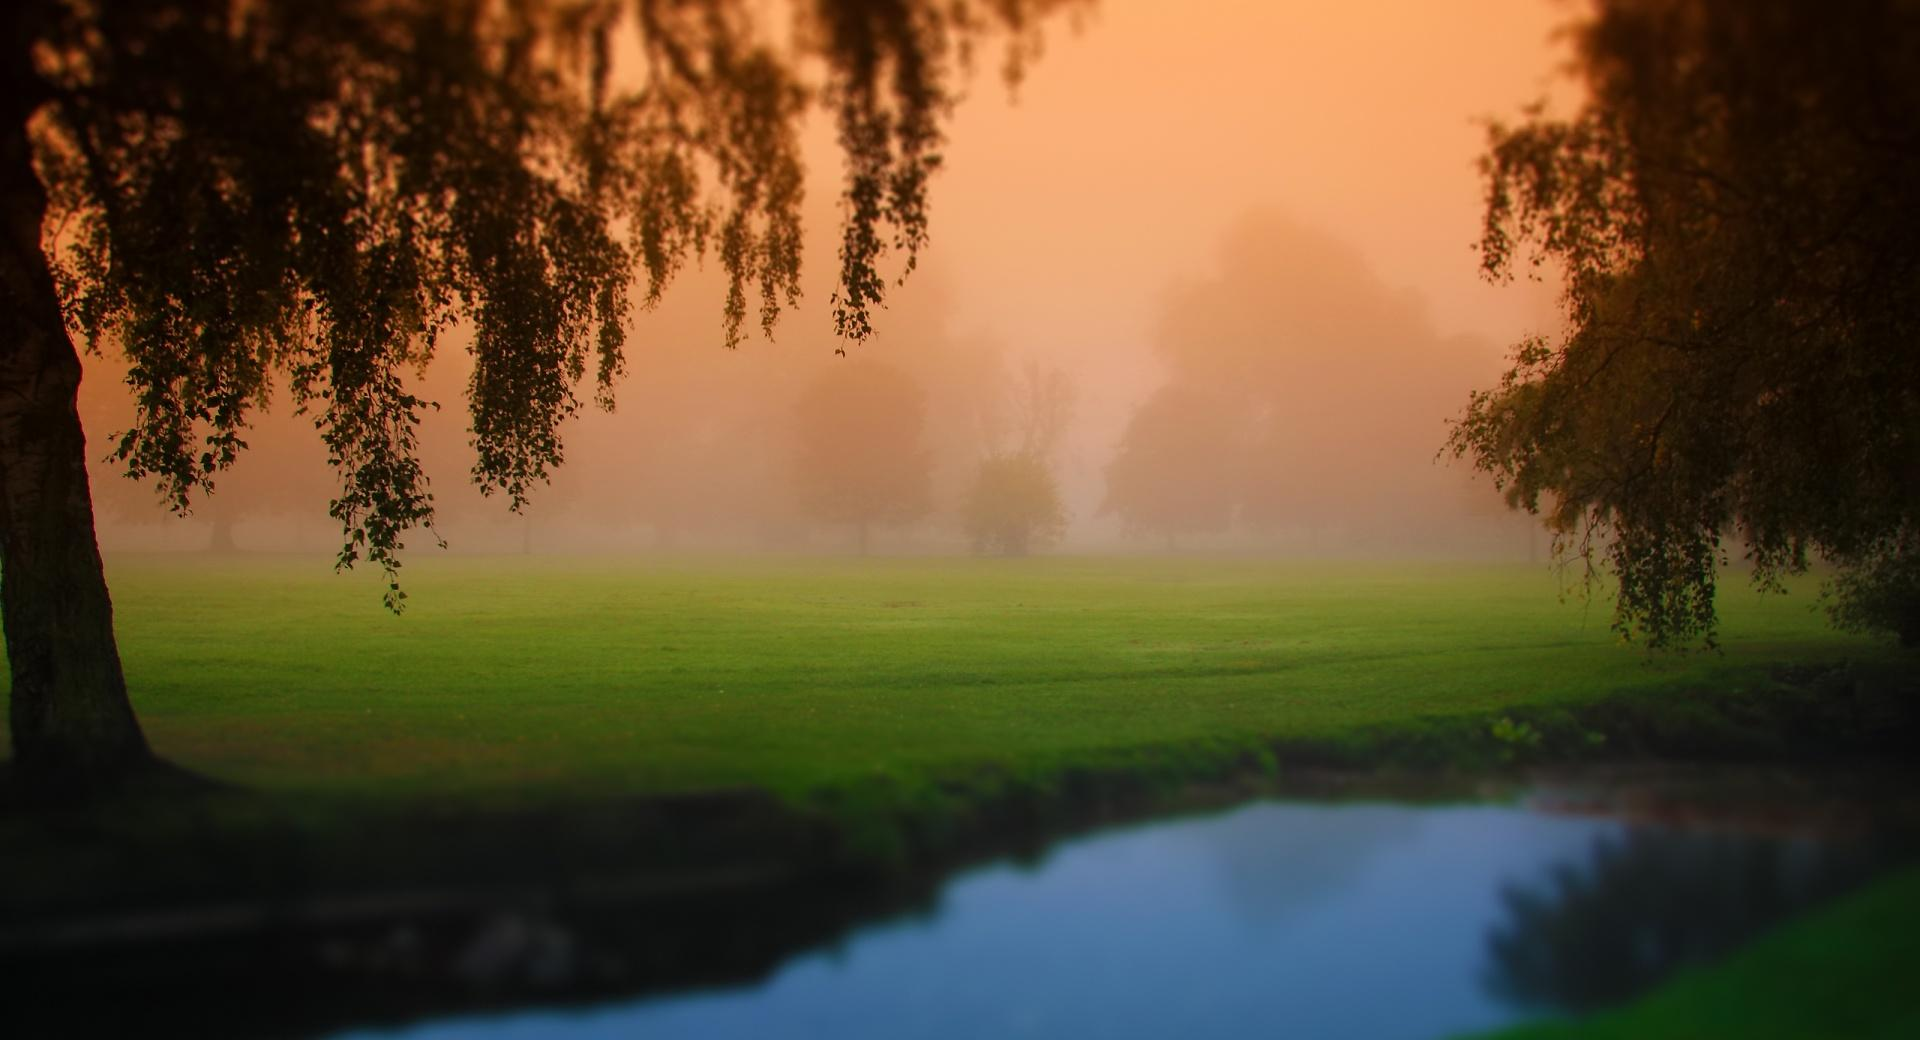 Park Morning Fog wallpapers HD quality